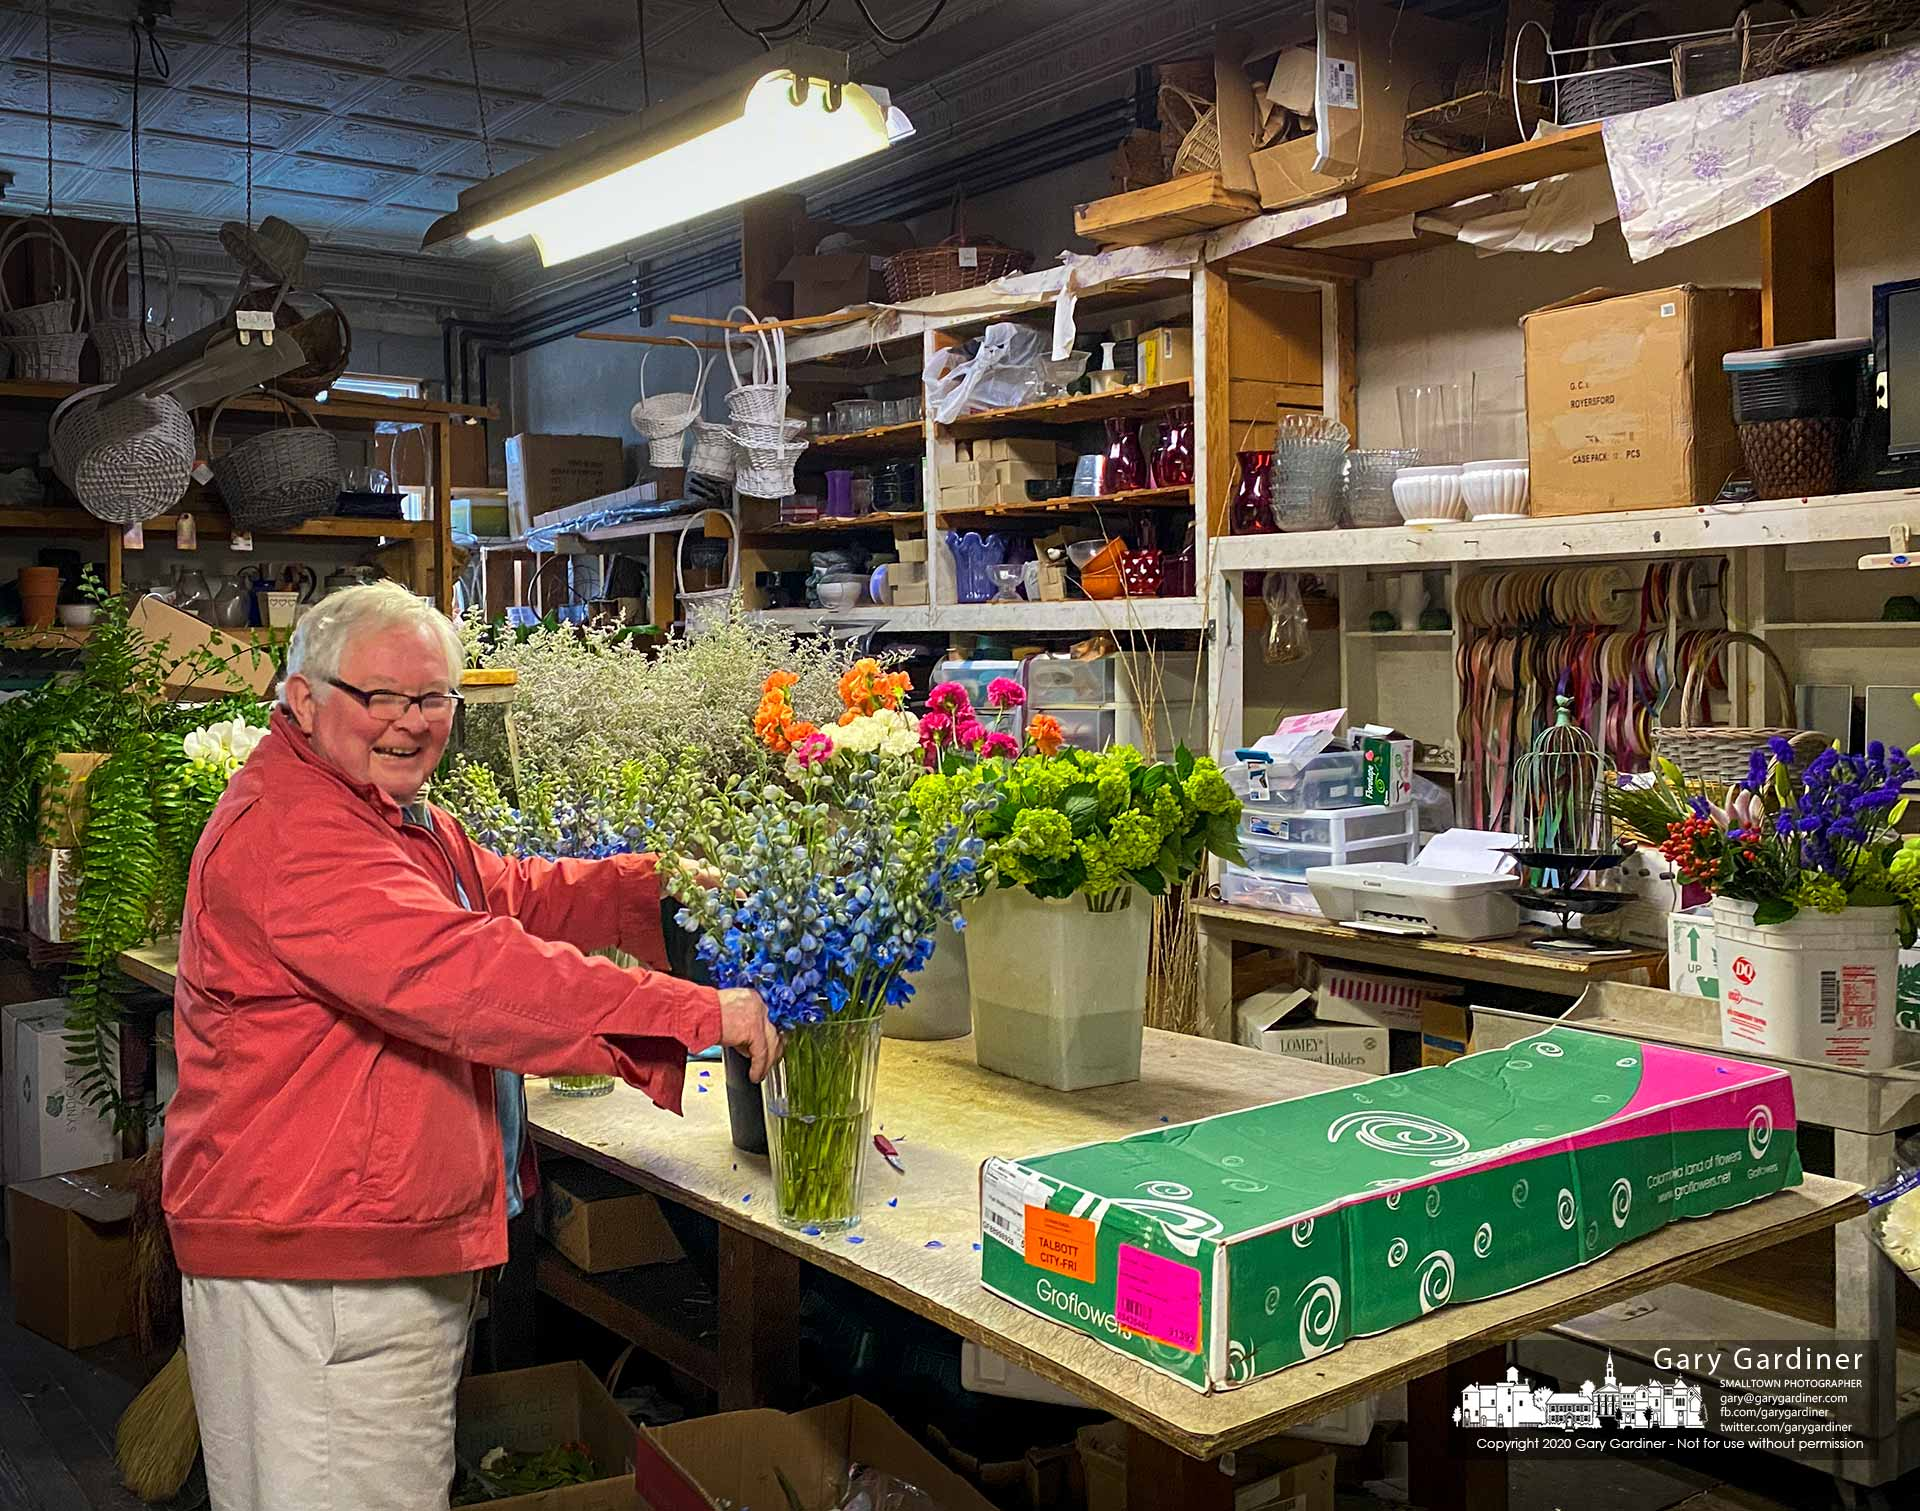 Uptown florist Dave Talbott shares a laugh as he works in his backroom creating another floral arrangement on a cool and rainy January afternoon. My Final Photo for Jan. 10, 2020.